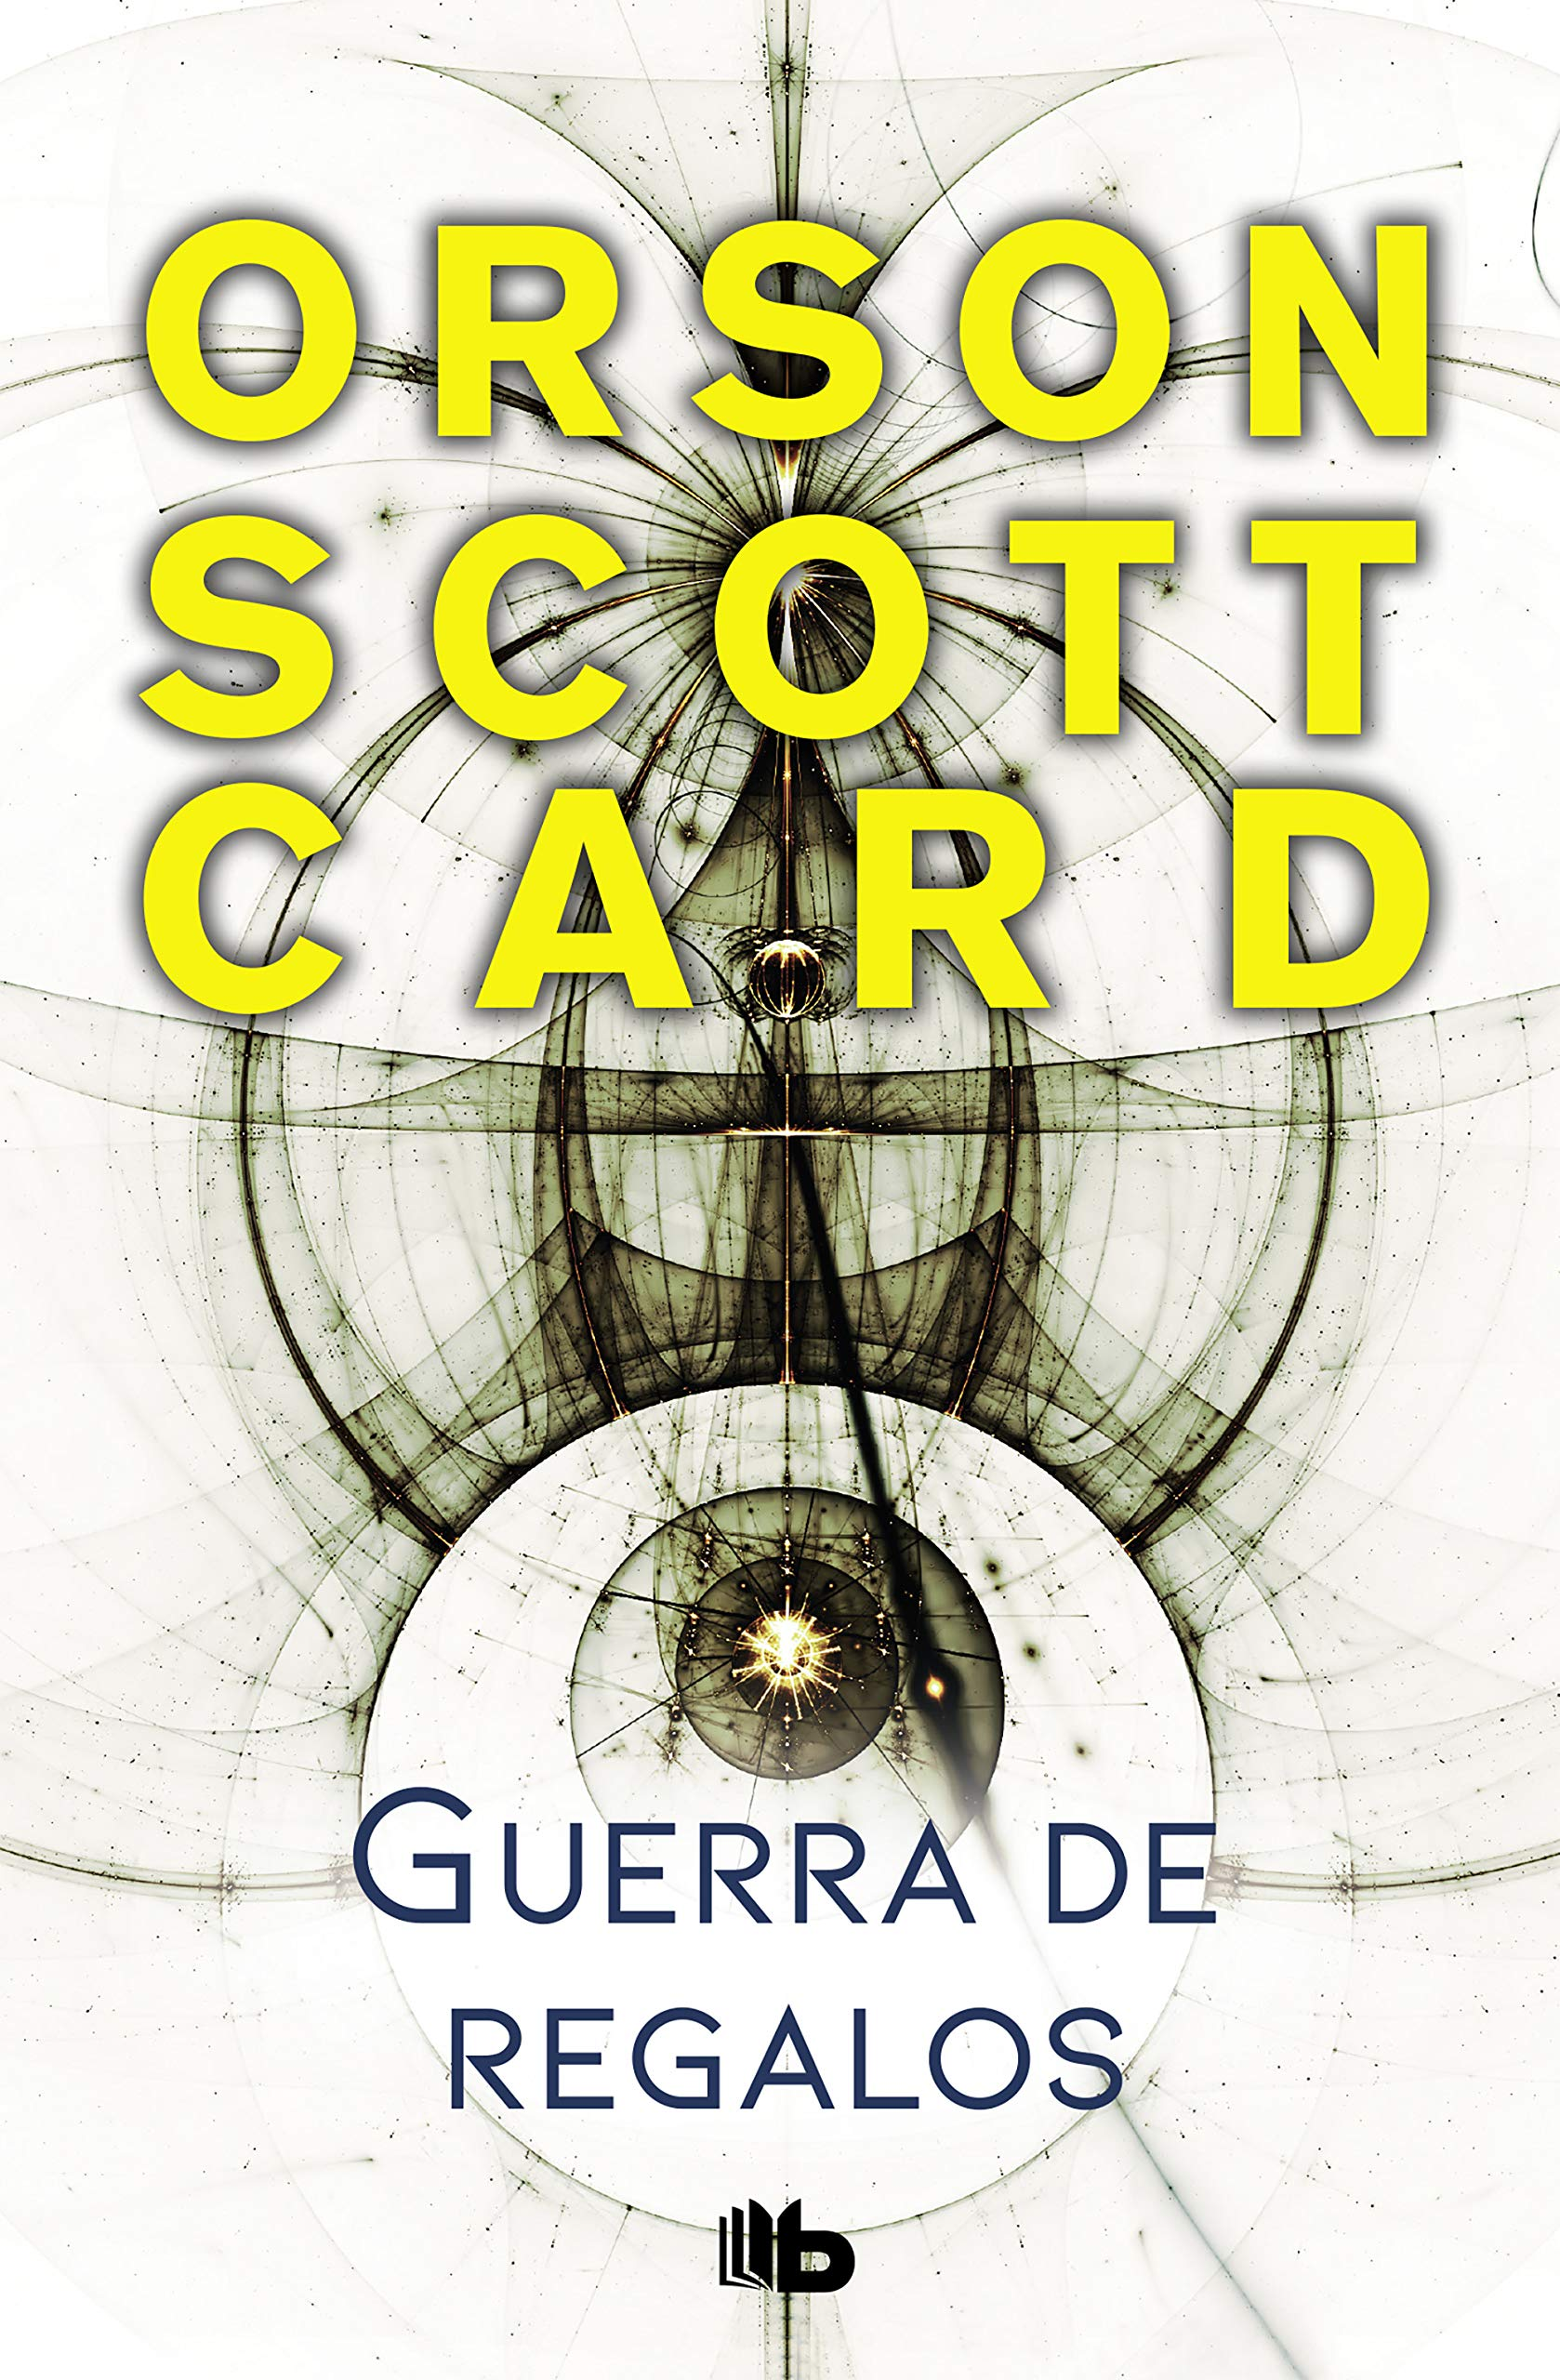 Guerra de regalos (Saga de Ender 11) (FICCIÓN) Tapa blanda – 22 nov 2018 Orson Scott Card B de Bolsillo (Ediciones B) 8490707499 Science fiction